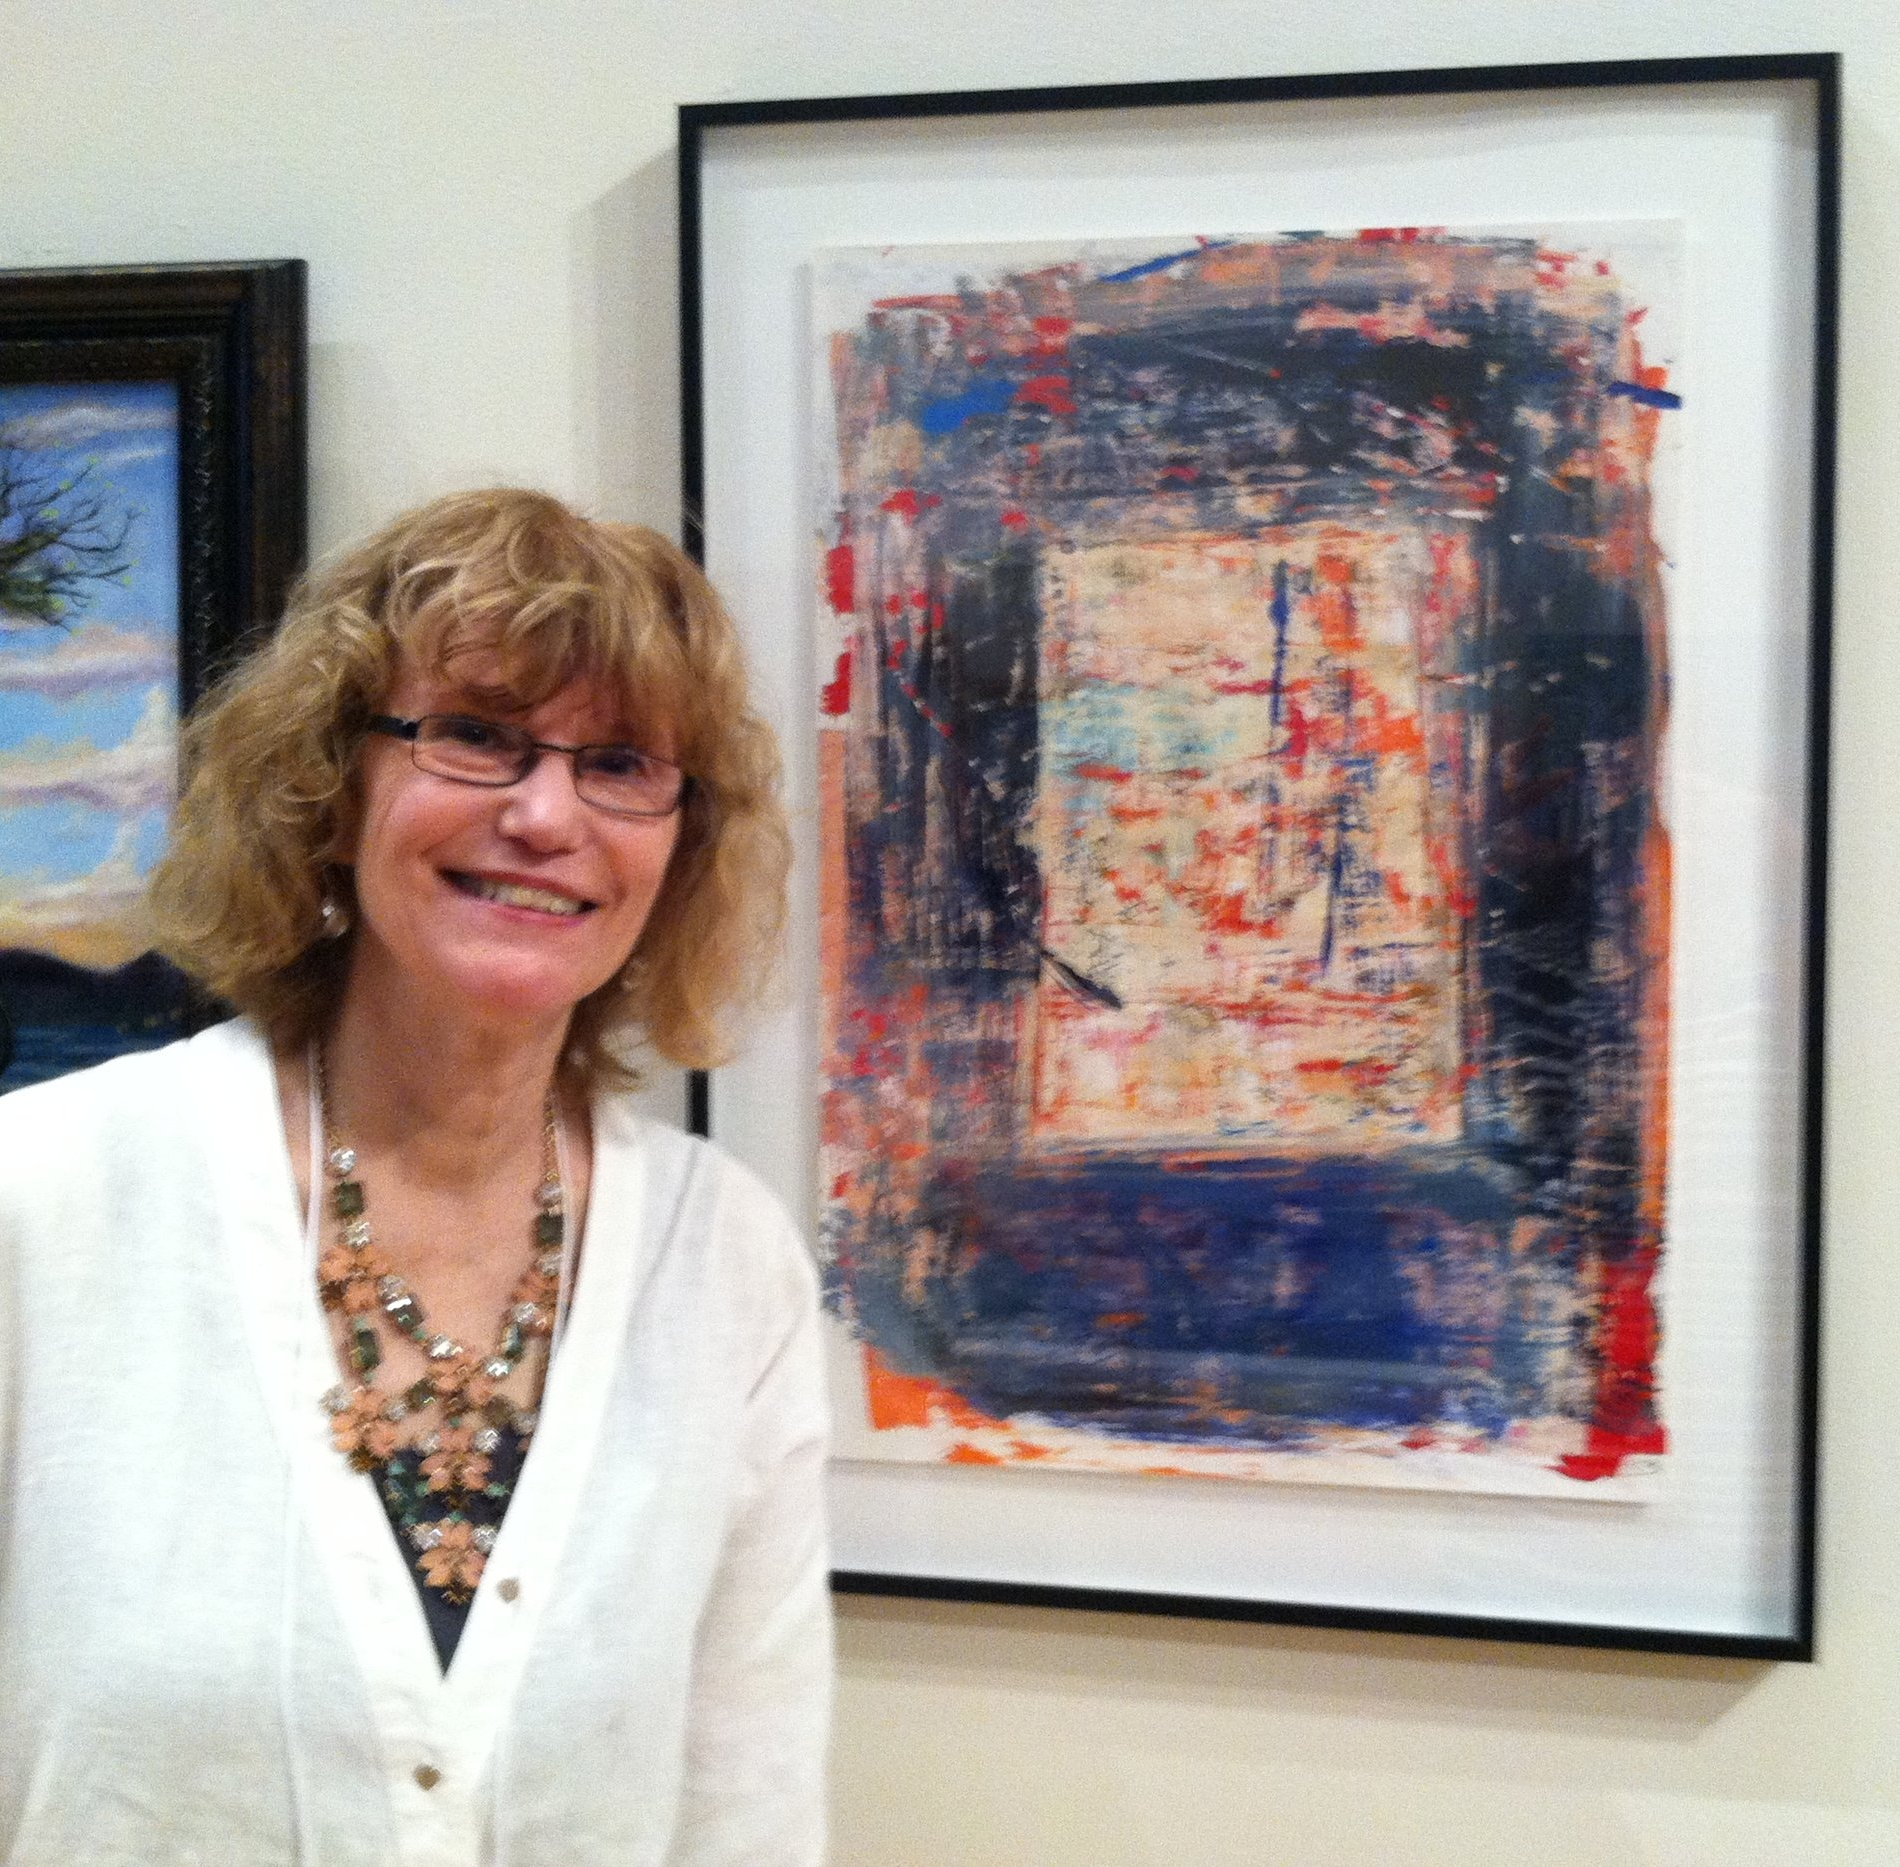 About ME - I have always loved abstract art. My favorite quote from author Azar Nafisi is: